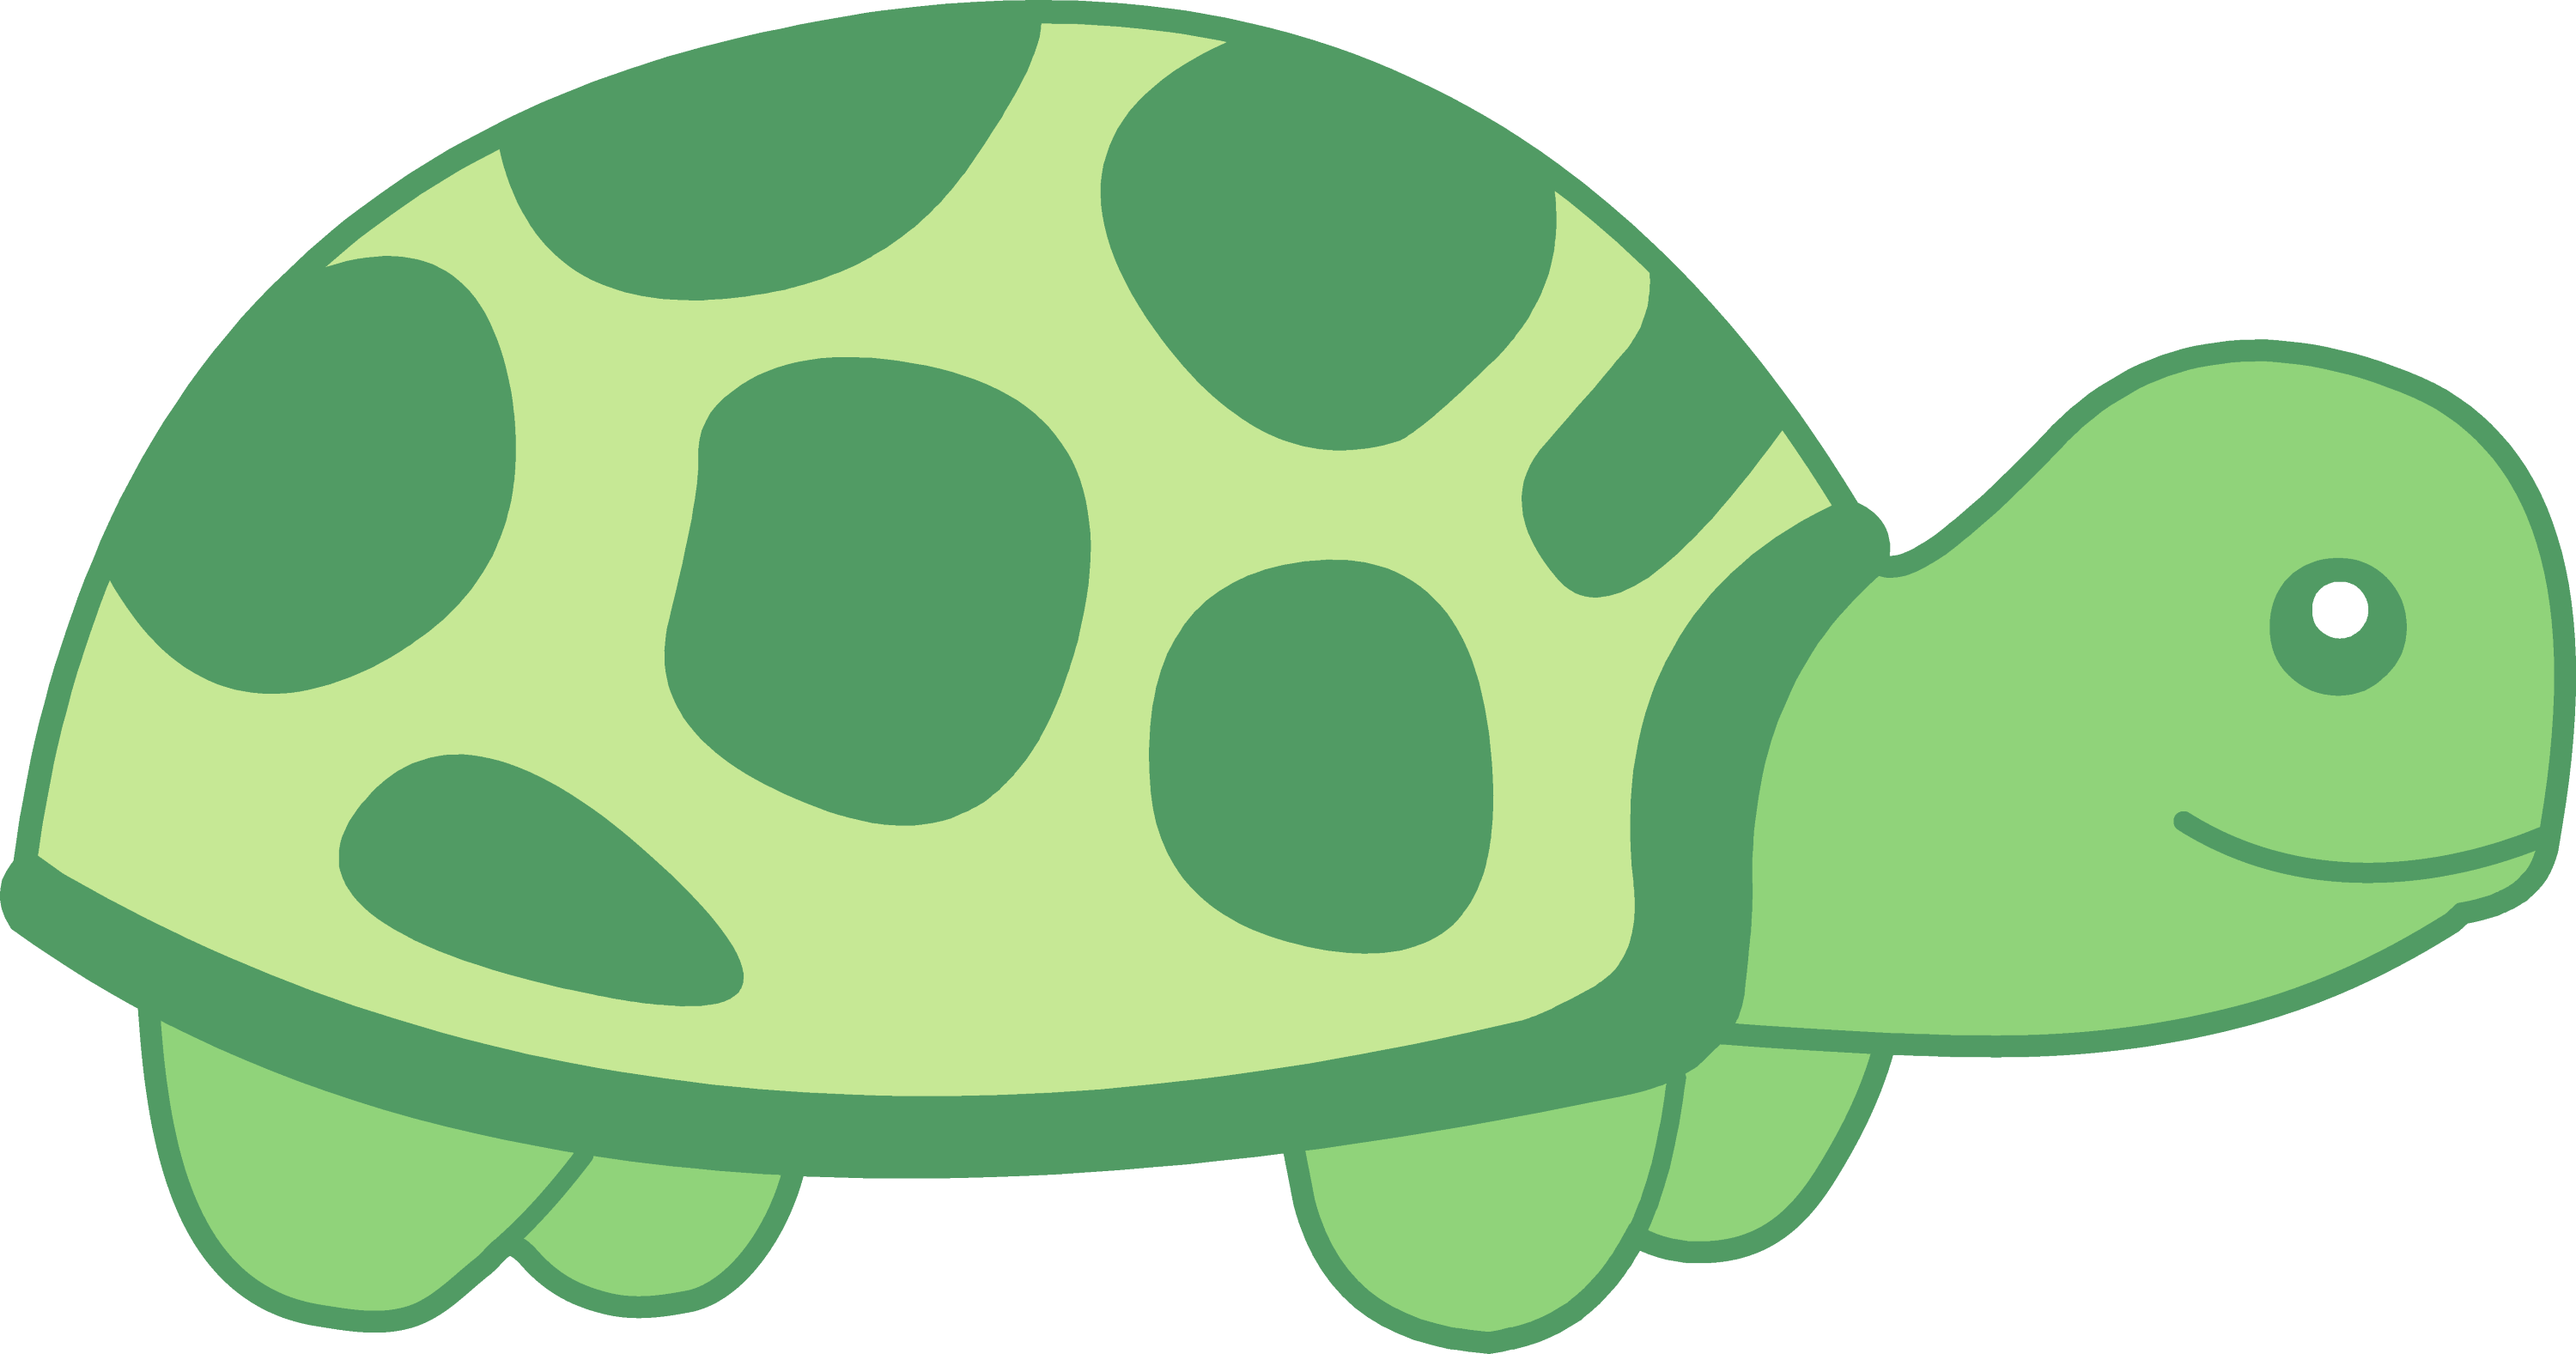 Cute Turtle Clip Art Related Keywords & Suggestions - Cute Turtle Clip ...: www.keyword-suggestions.com/Y3V0ZSB0dXJ0bGUgY2xpcCBhcnQ